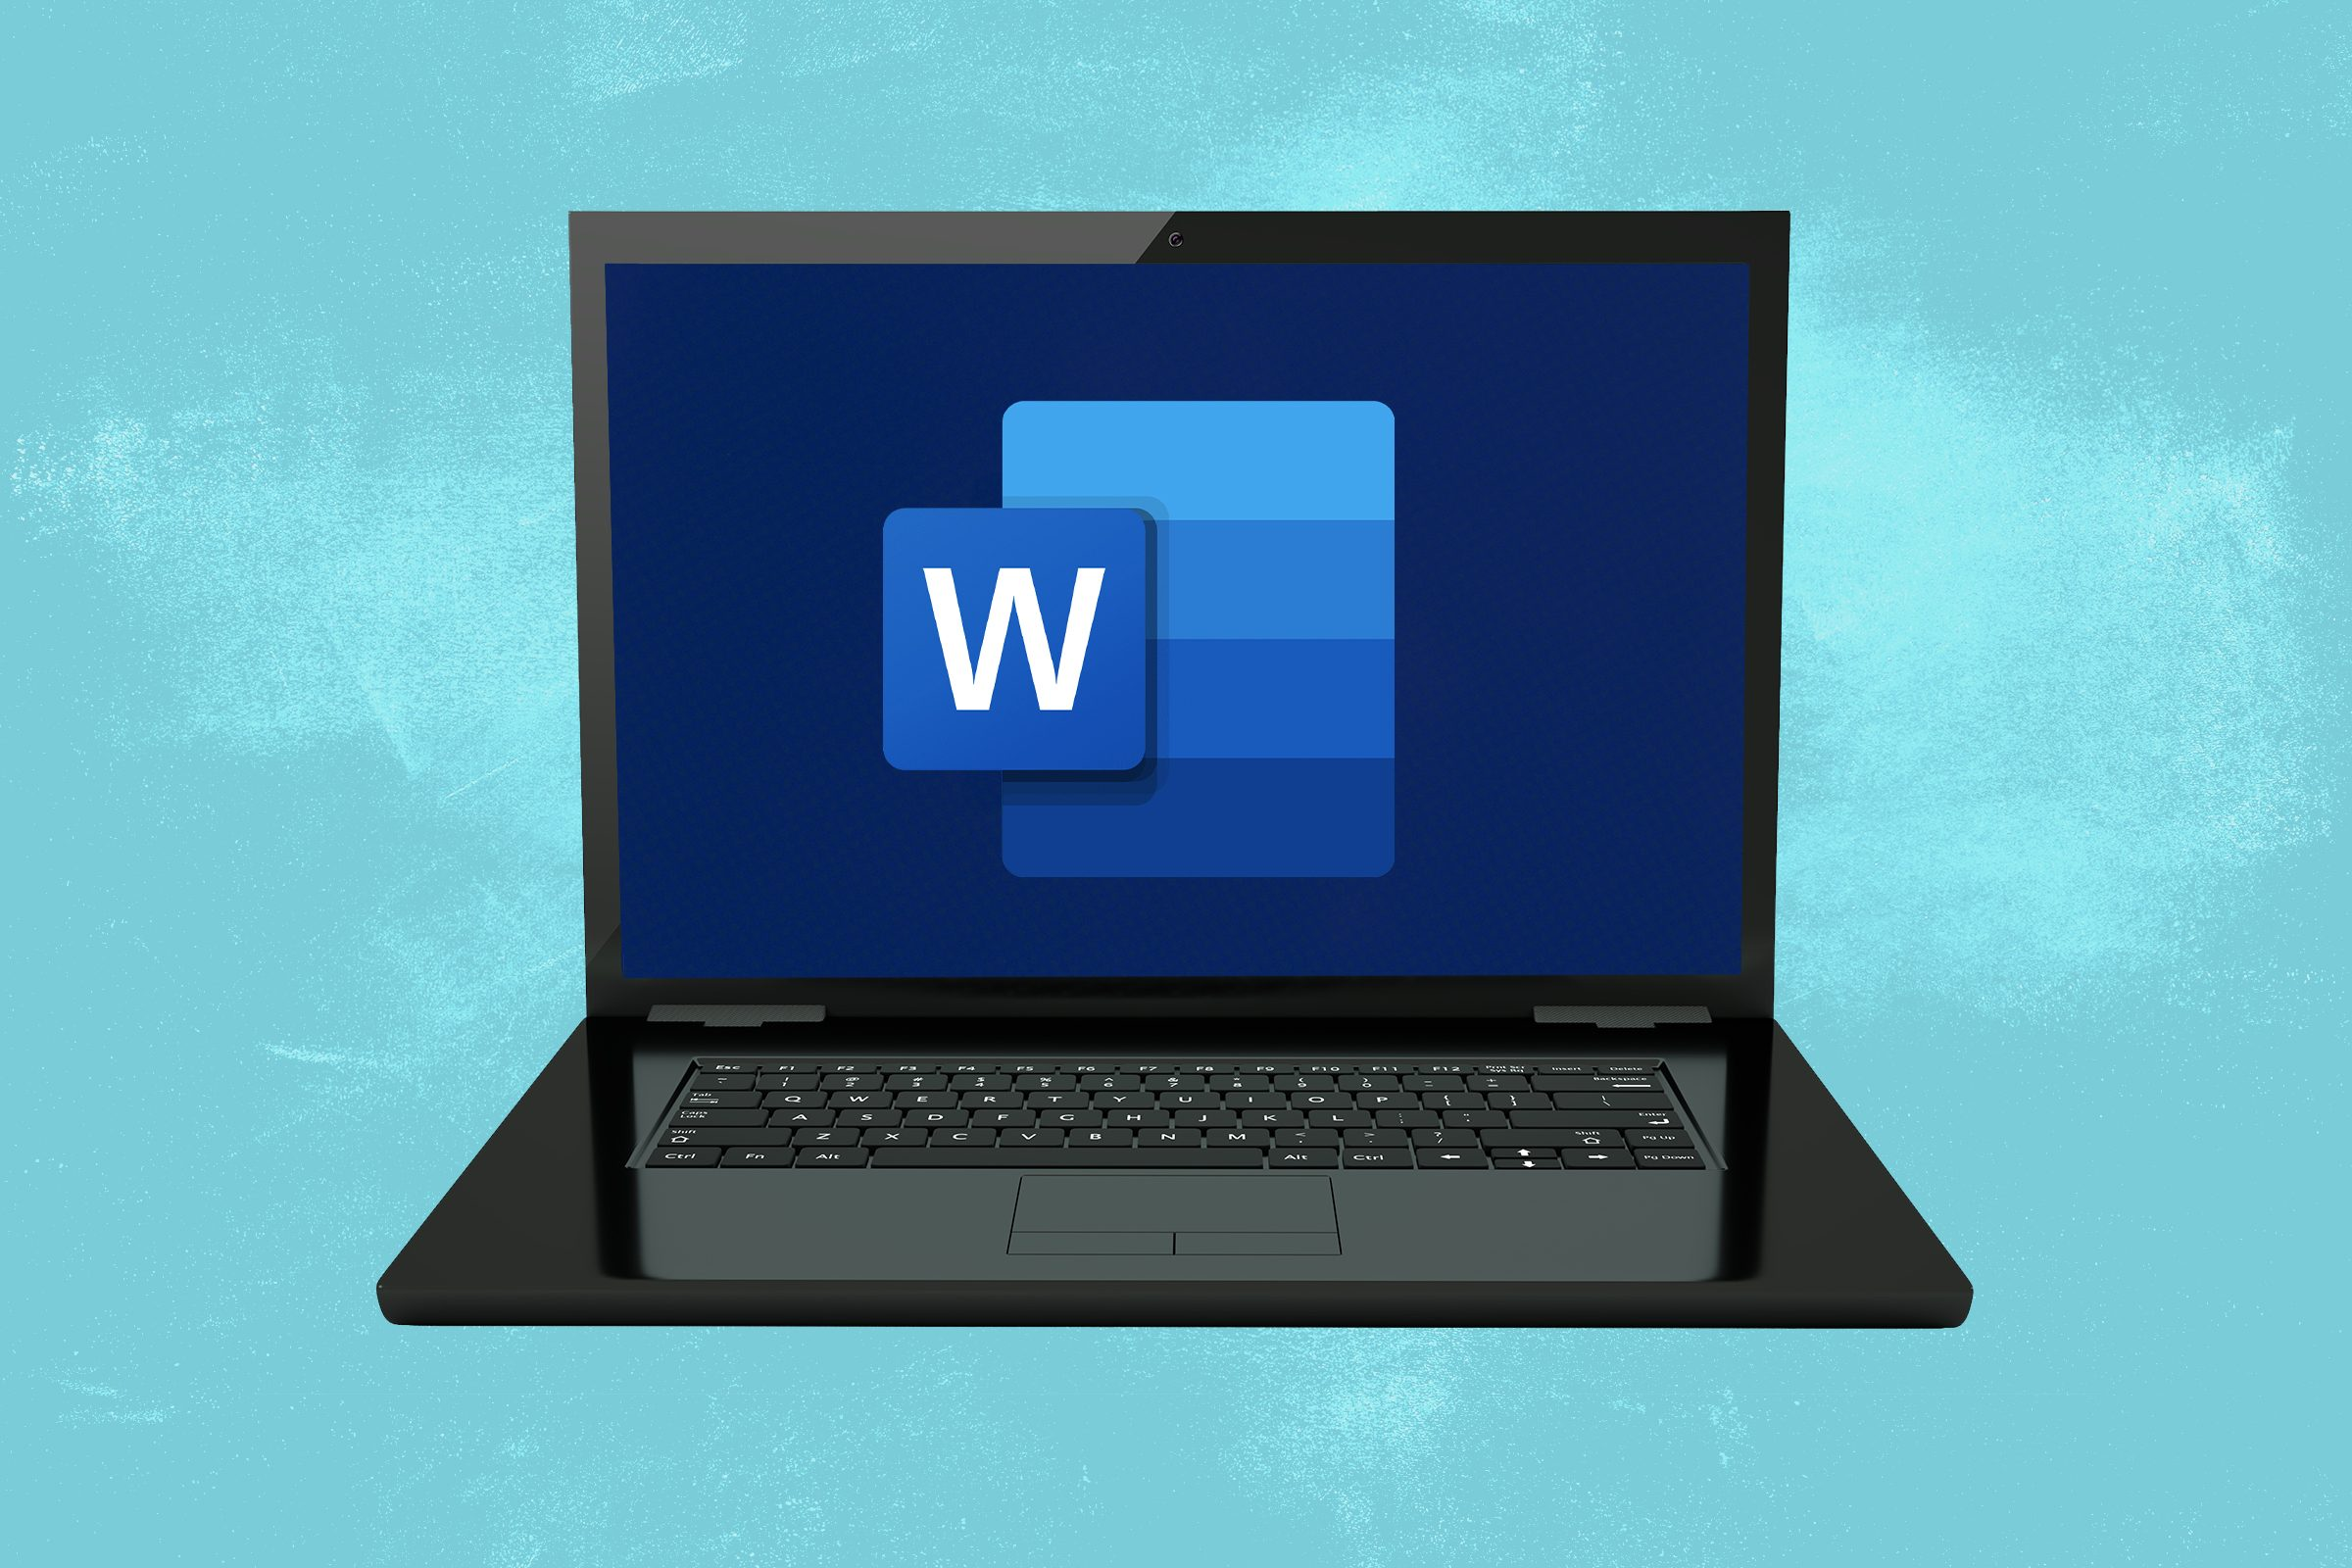 A laptop showing Microsoft Word icon